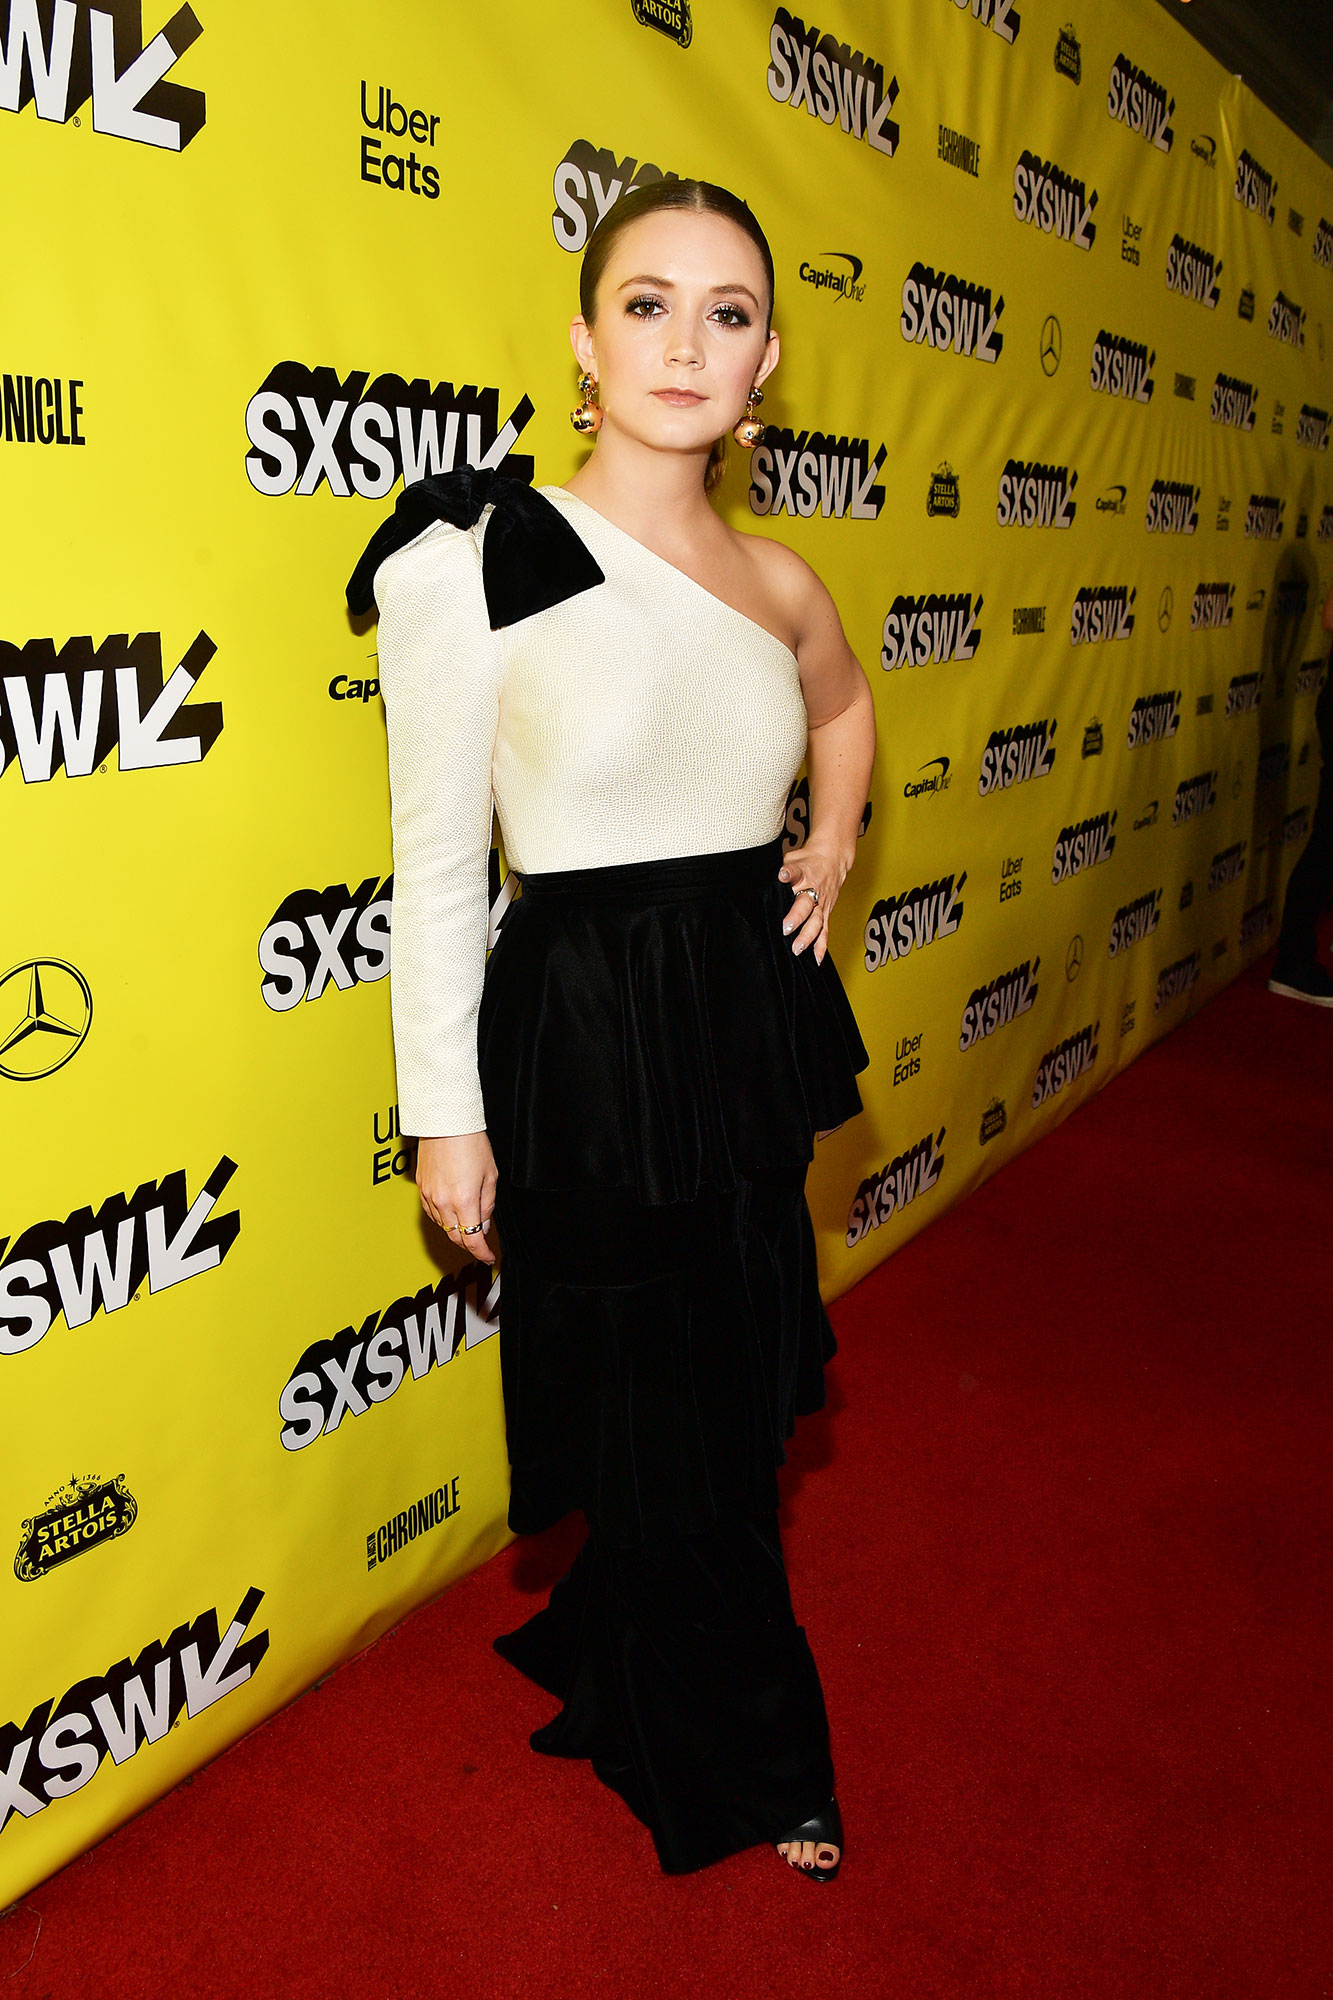 The Stars Bring Their Beauty and Style A-Game to SXSW - It was all about the '80s vibes for the actress in a one-shoulder black and white gown at the Booksmart premiere on Sunday, March 10.